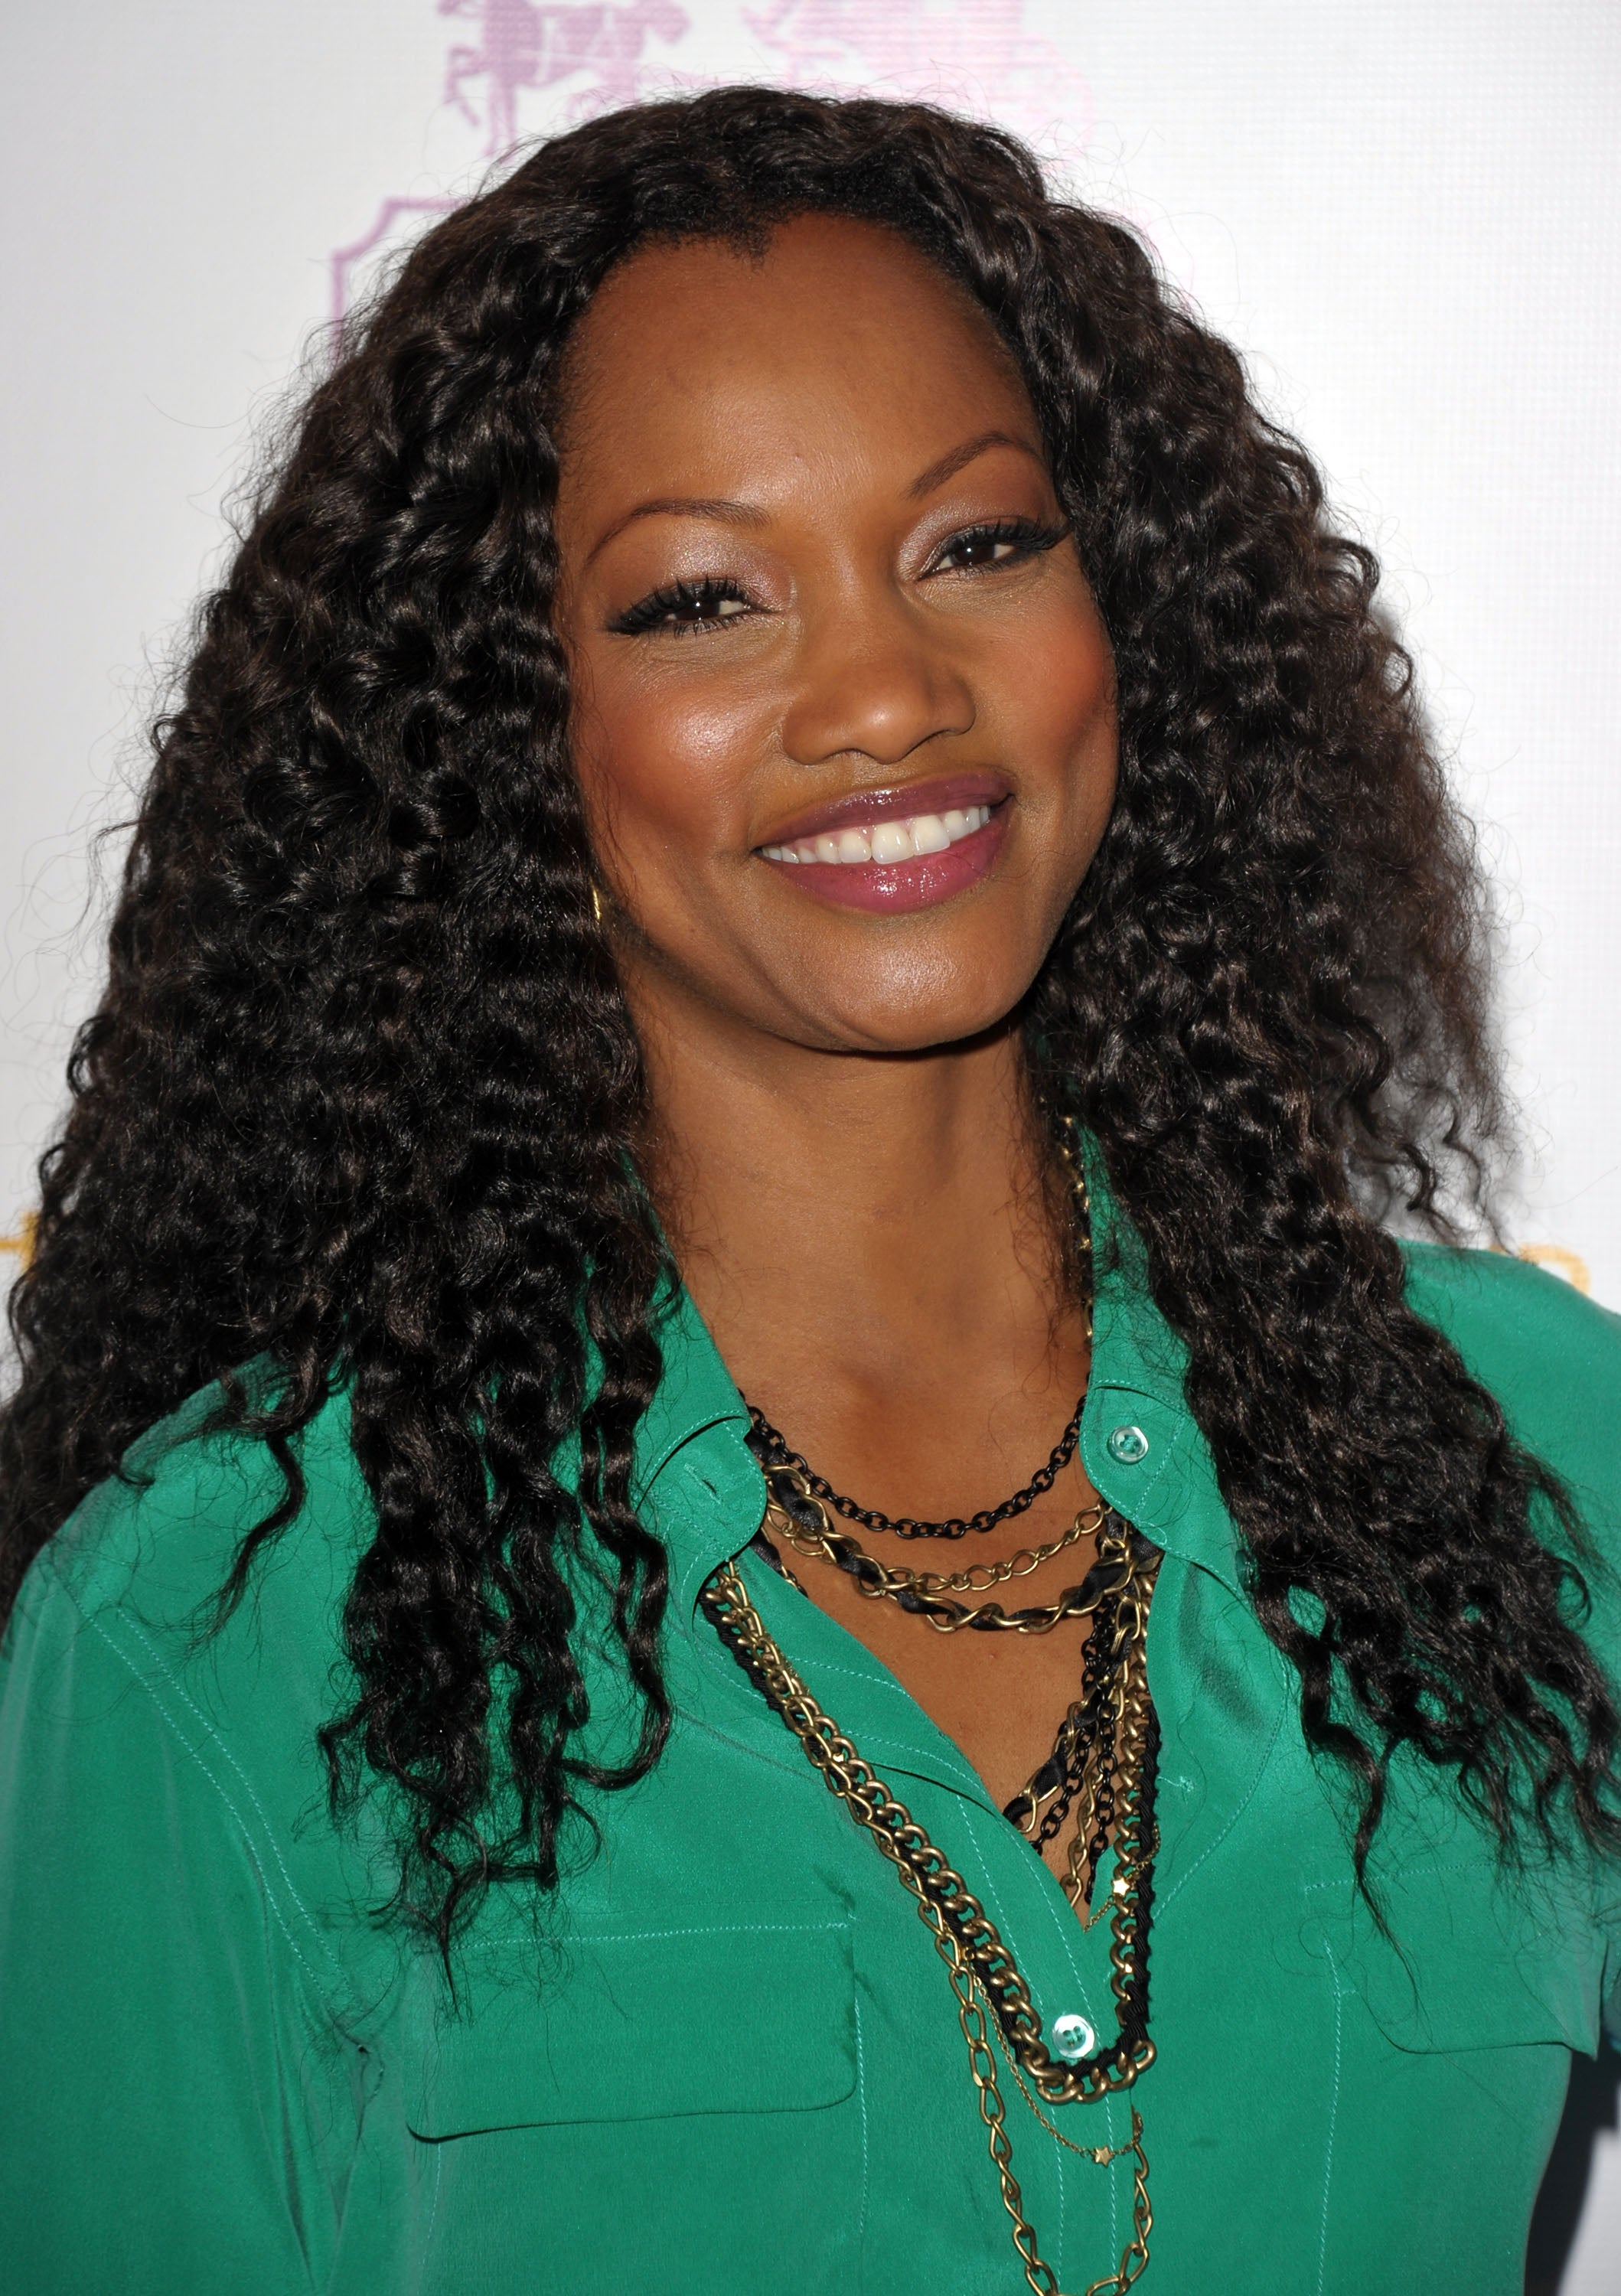 Hairstyle File: Garcelle Beauvais' Crimps and Curls